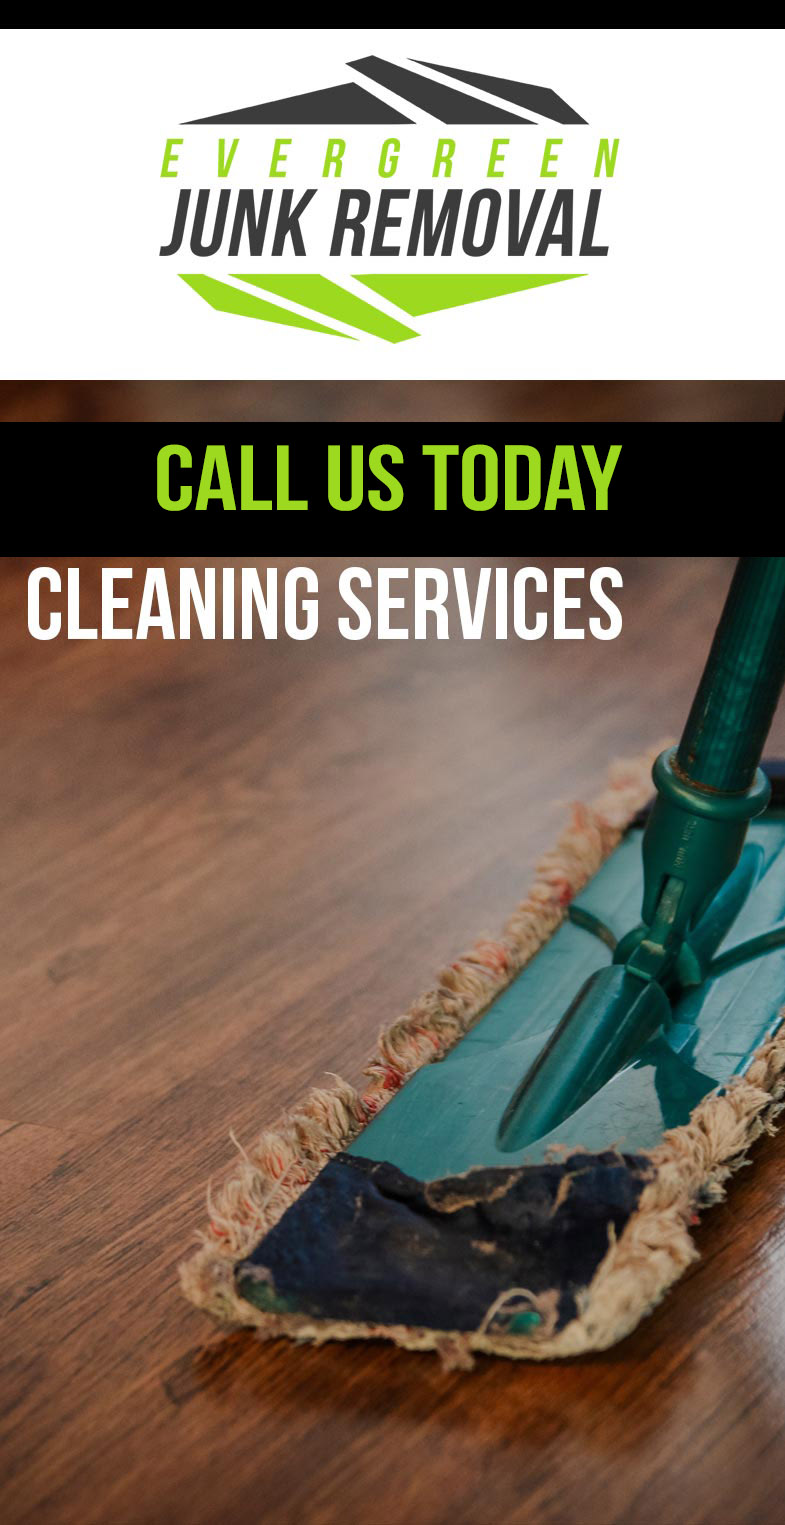 Hallandale Beach Florida Maid Services